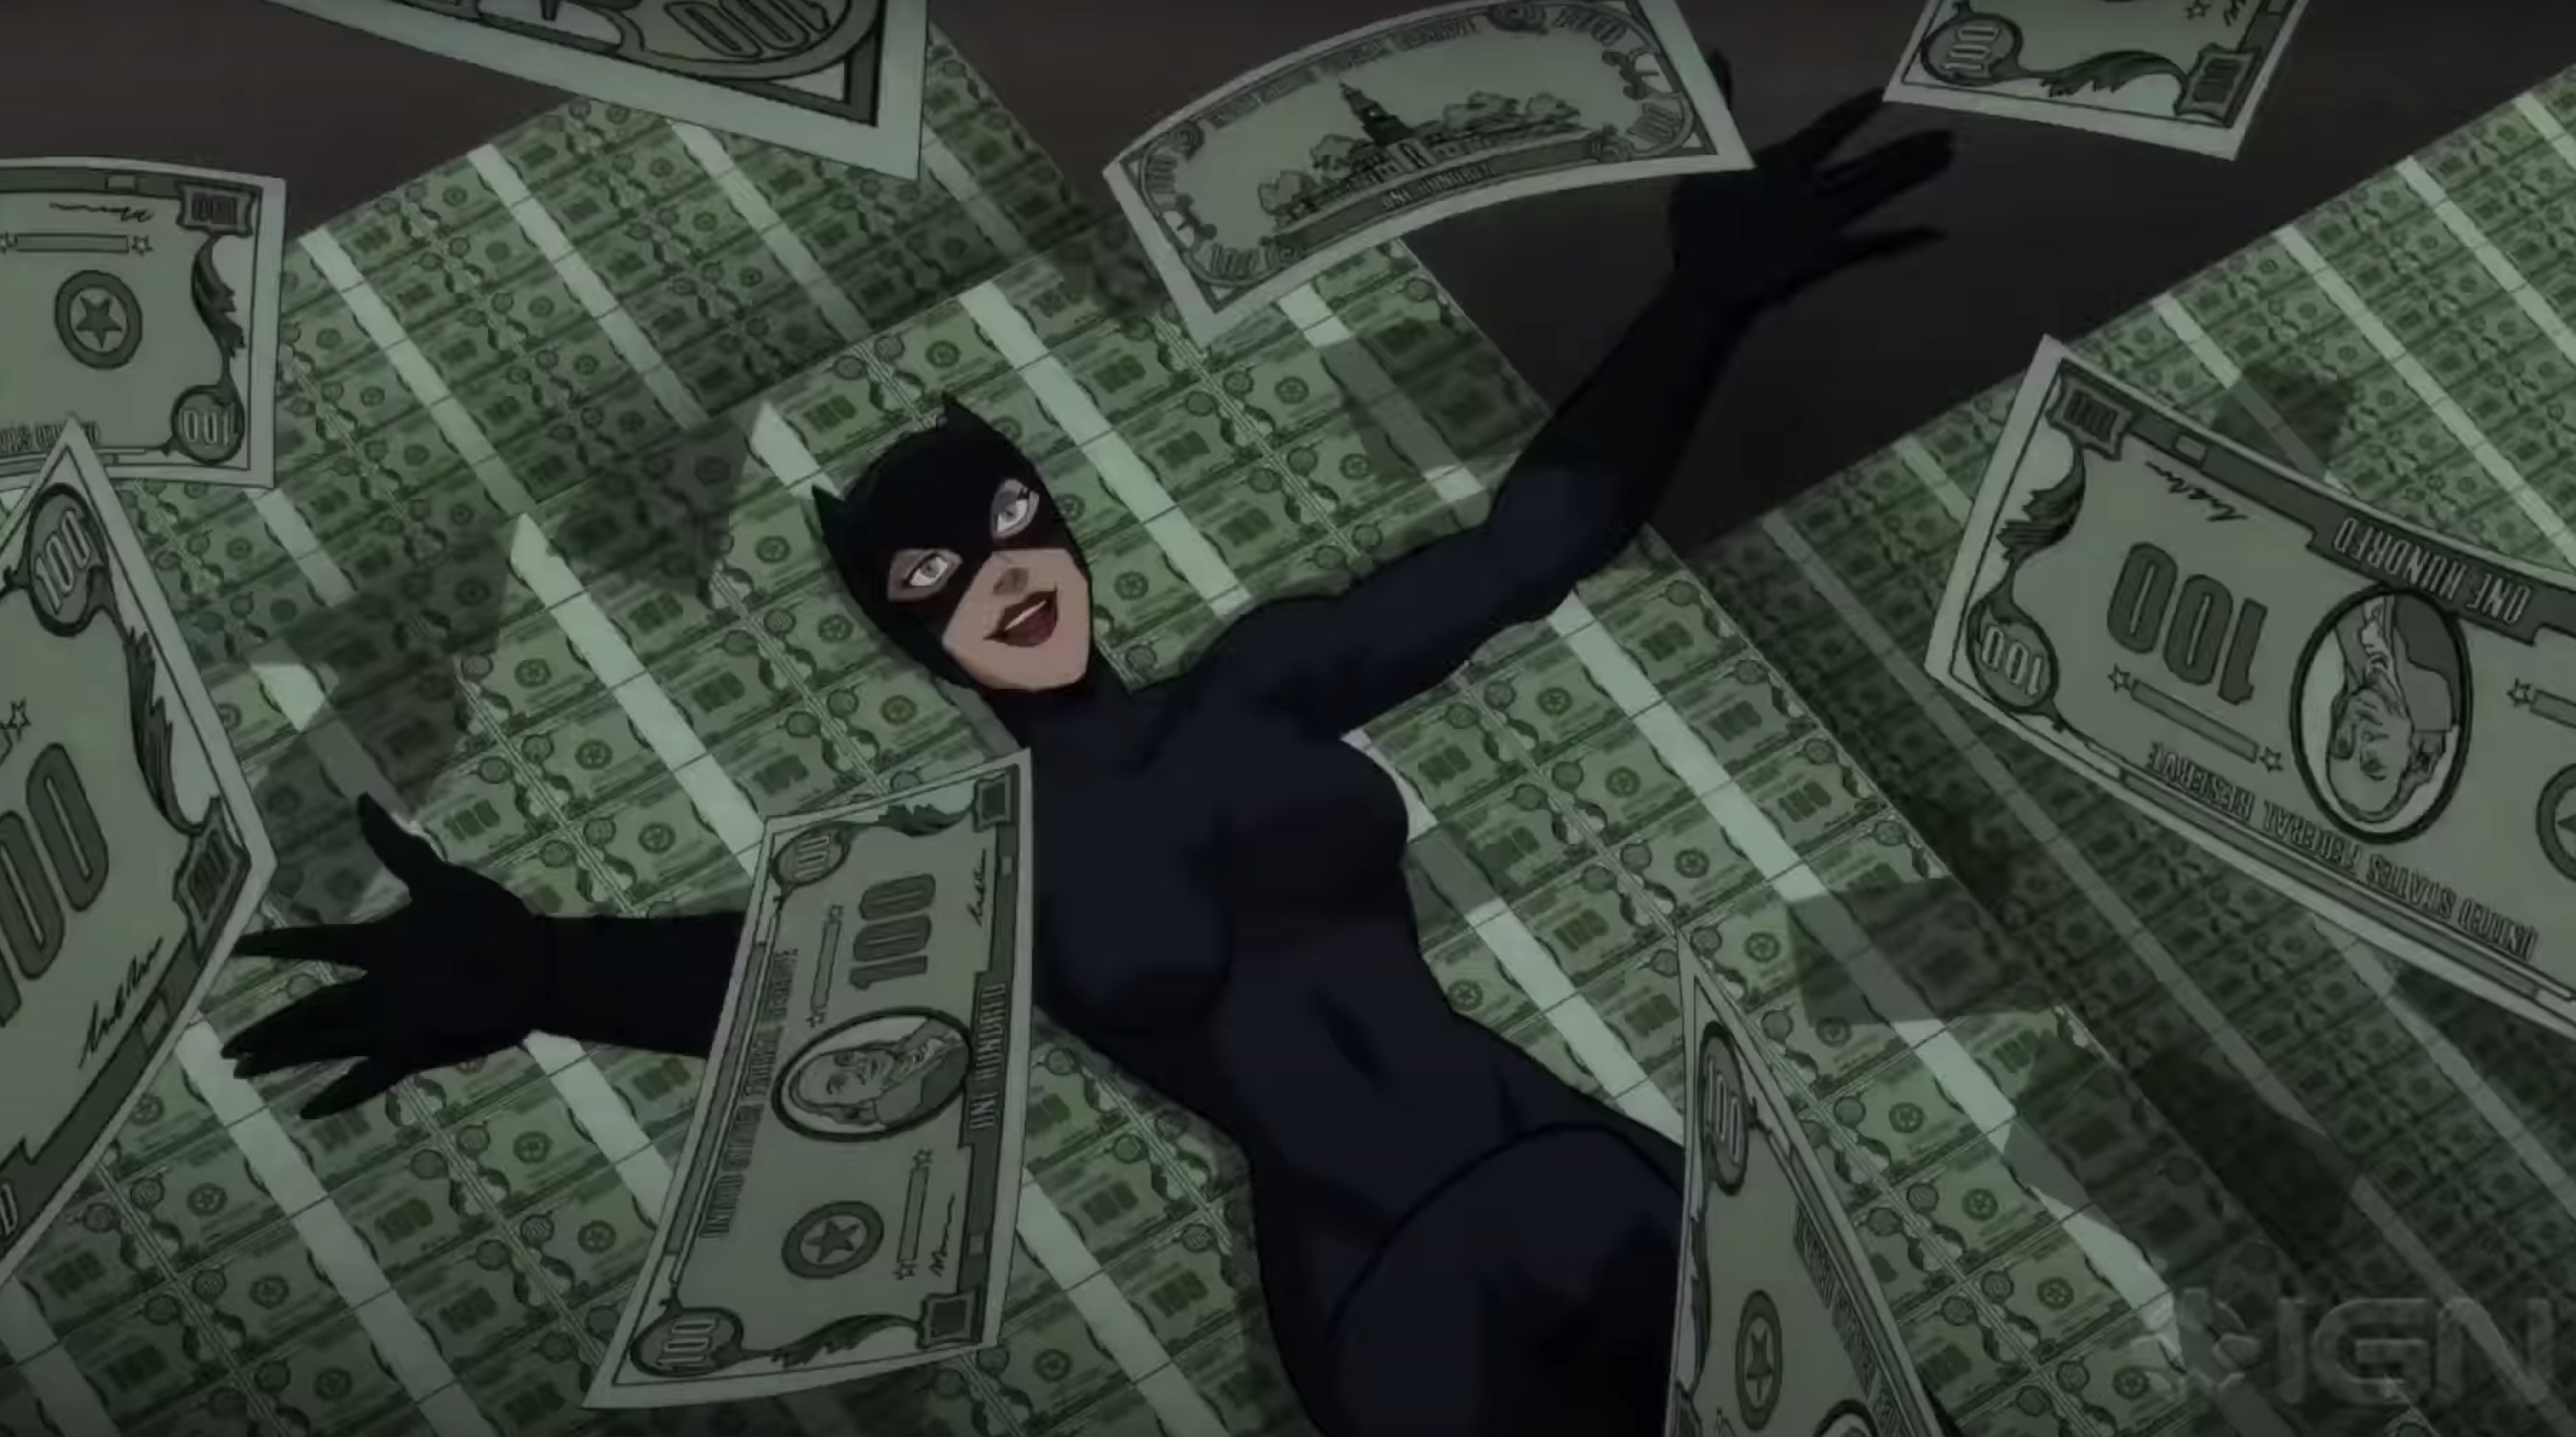 Catwoman lays in a pile of money